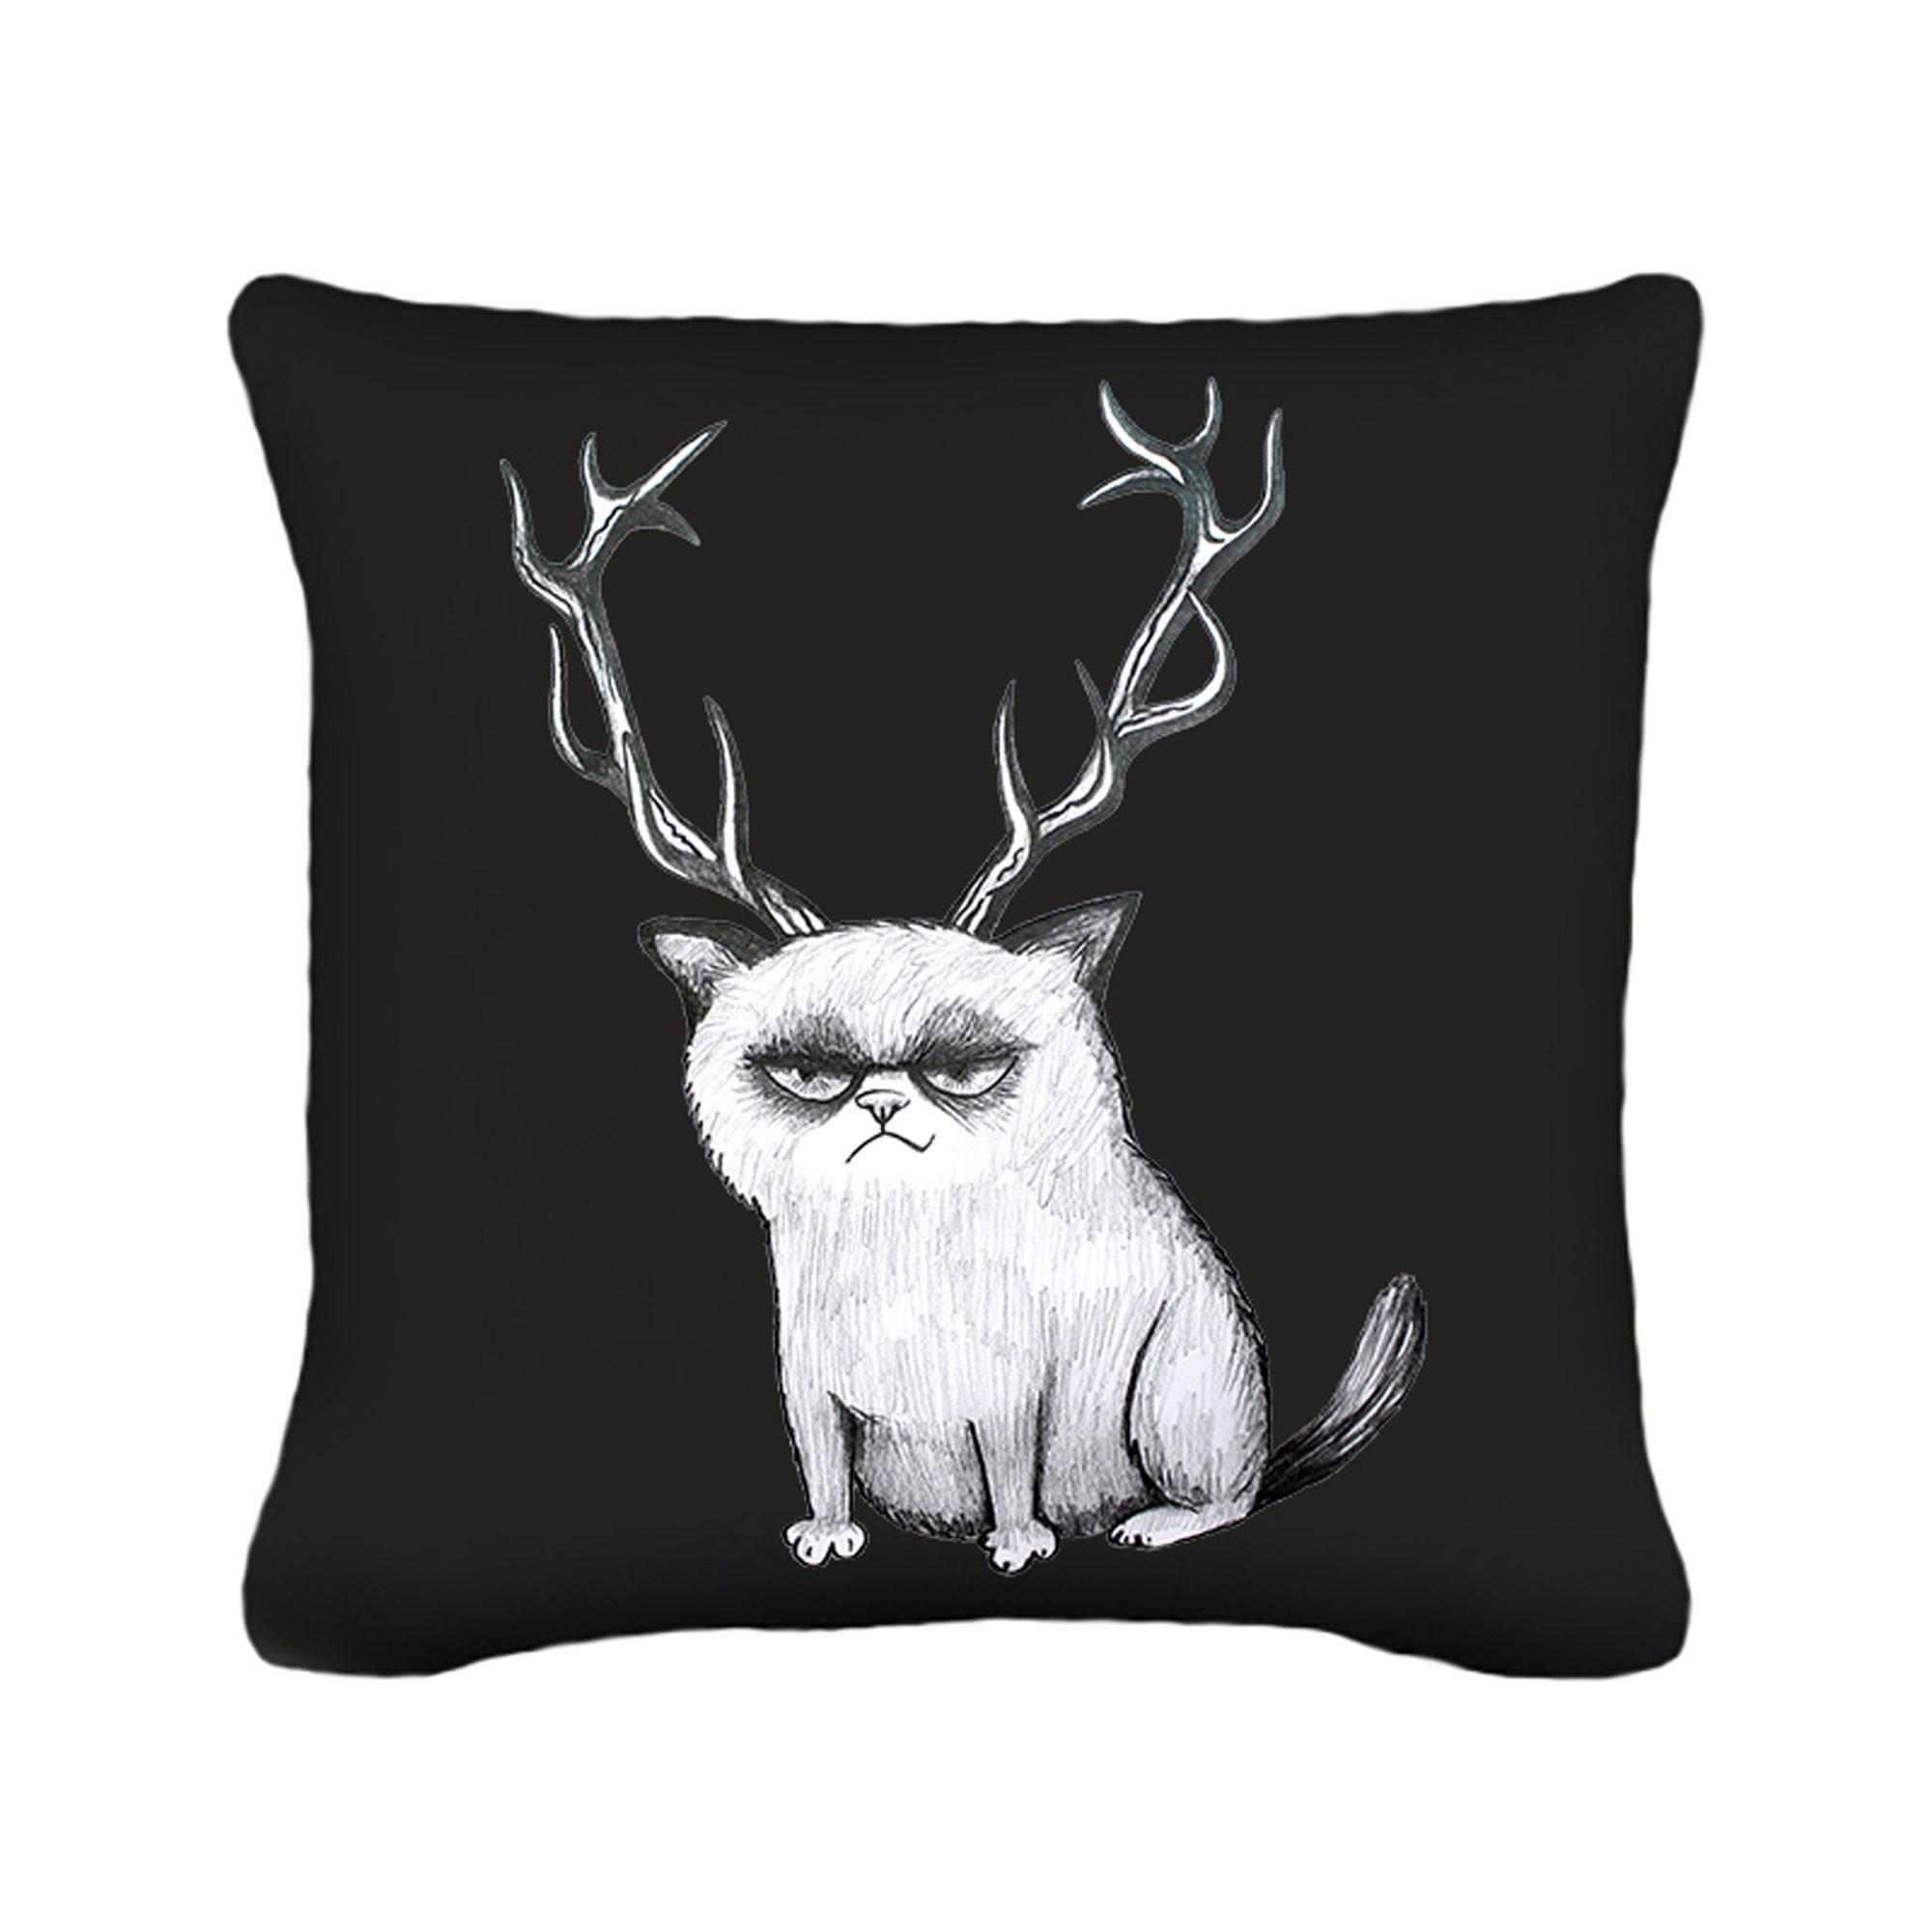 kissen dekokissen grumpy cat katze mit geweih inklusive f llung k43 wandtattoos elfent r tassen. Black Bedroom Furniture Sets. Home Design Ideas